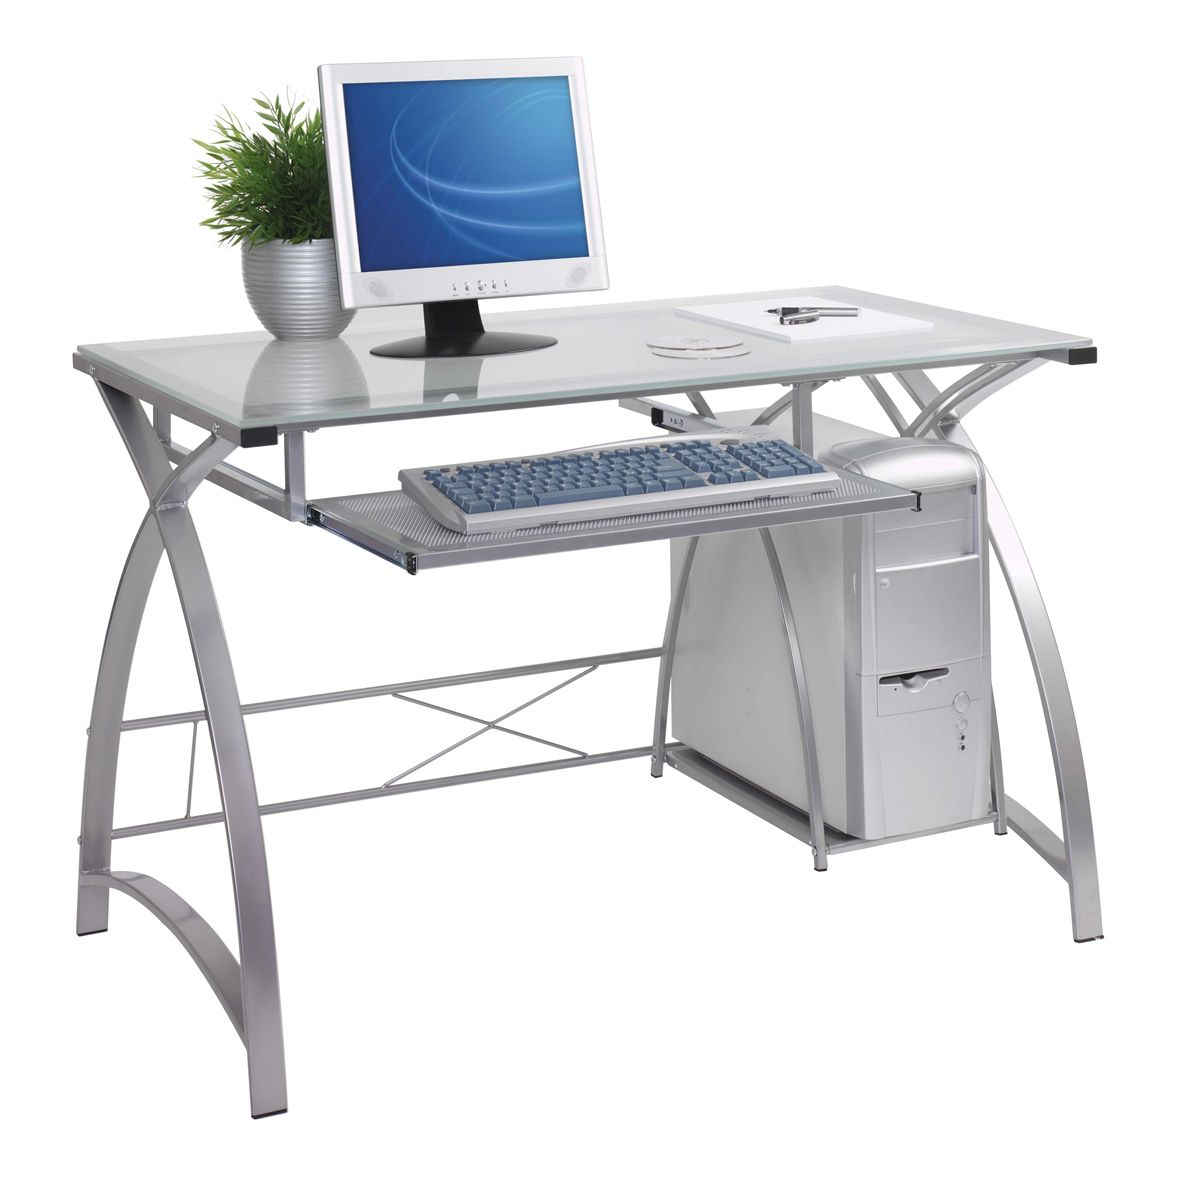 Furniture, Appealing Modern Computer Desk Plans For Your Home And ...